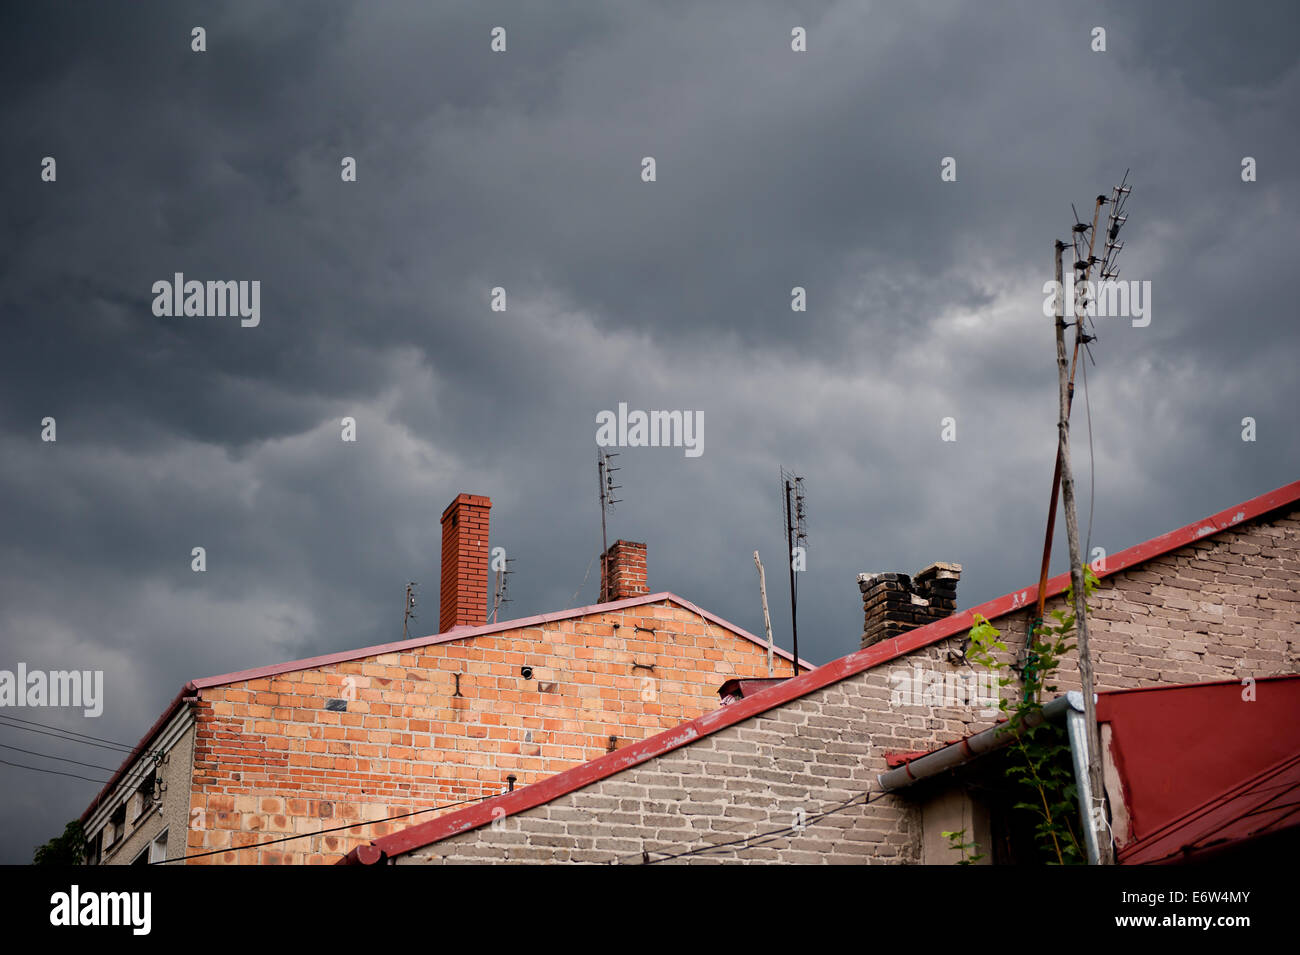 Gloomy clouds weather - Stock Image